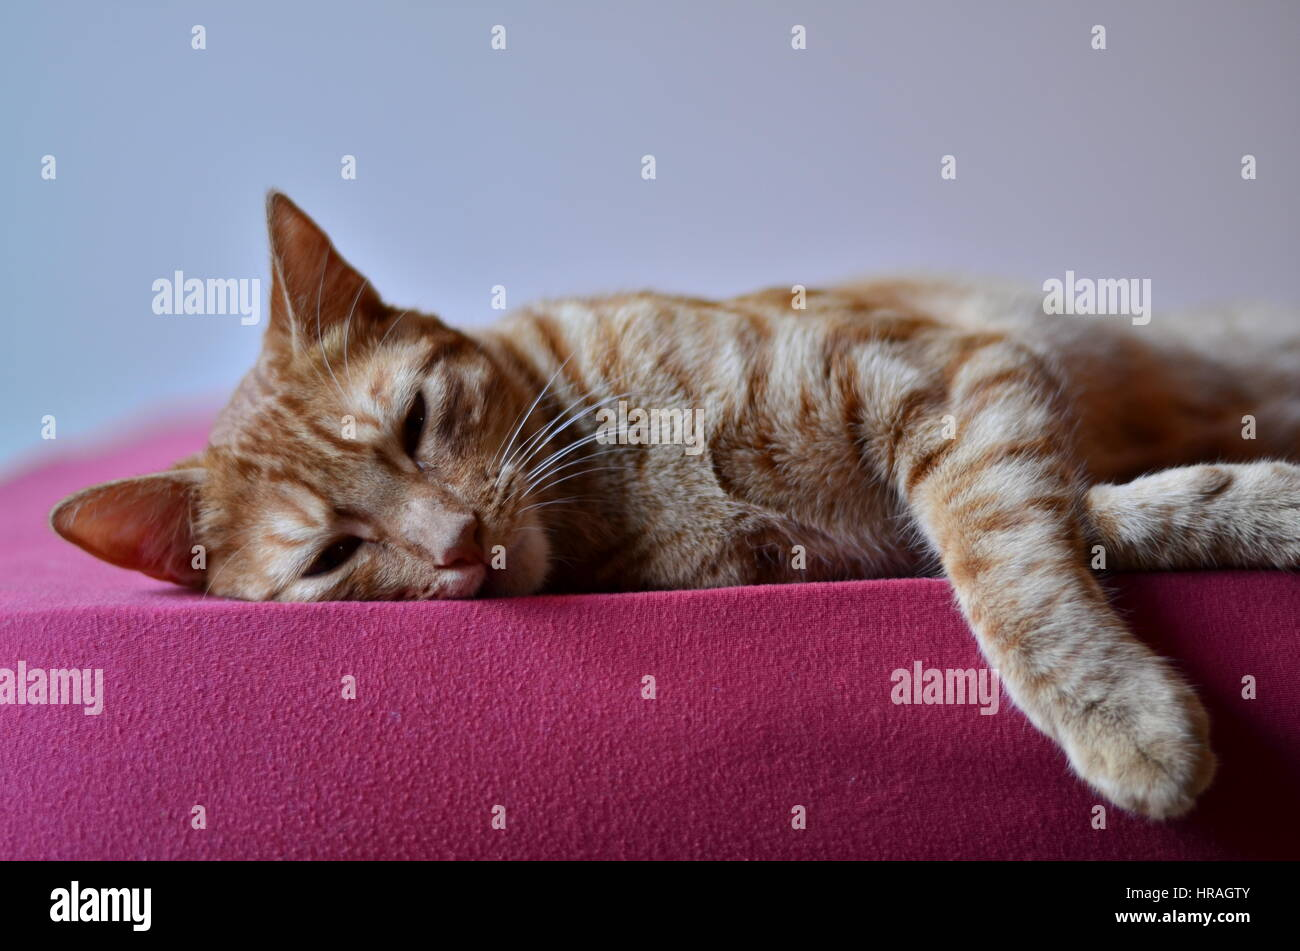 Cat in a nap time - Stock Image